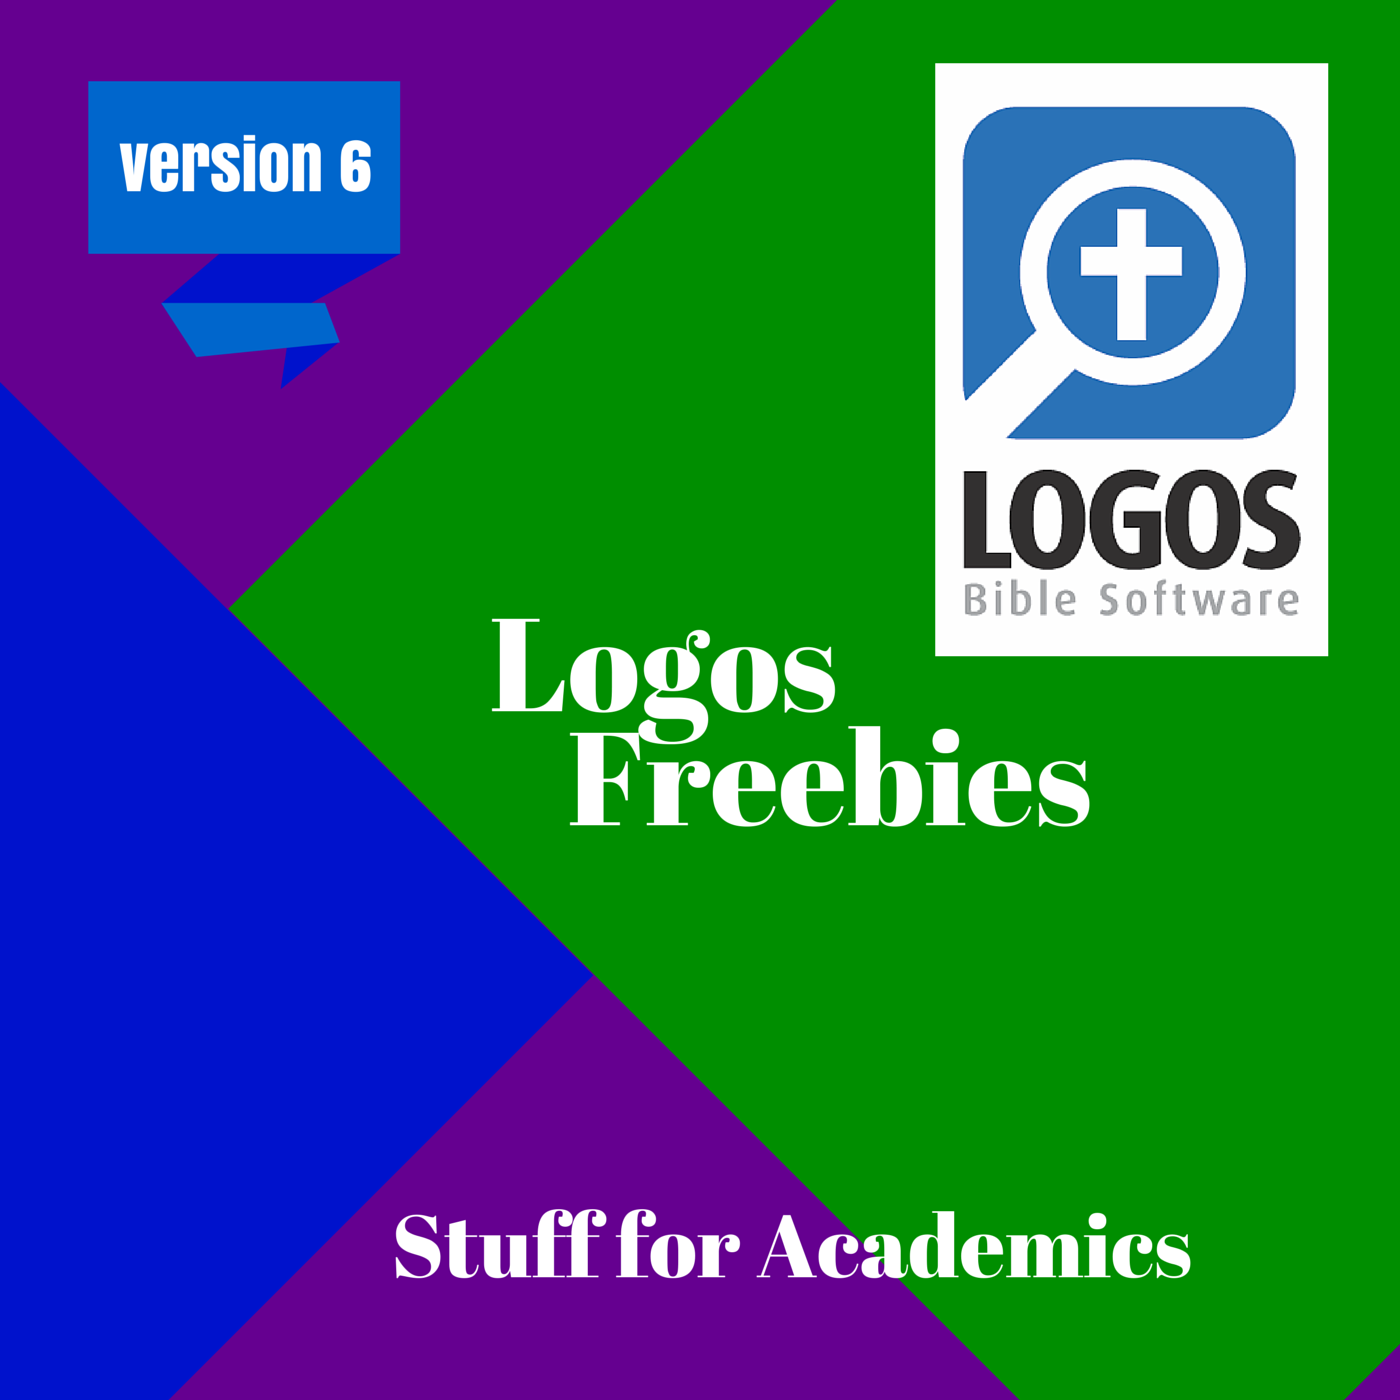 Logos Freebies Every Biblical Scholar Should Know About